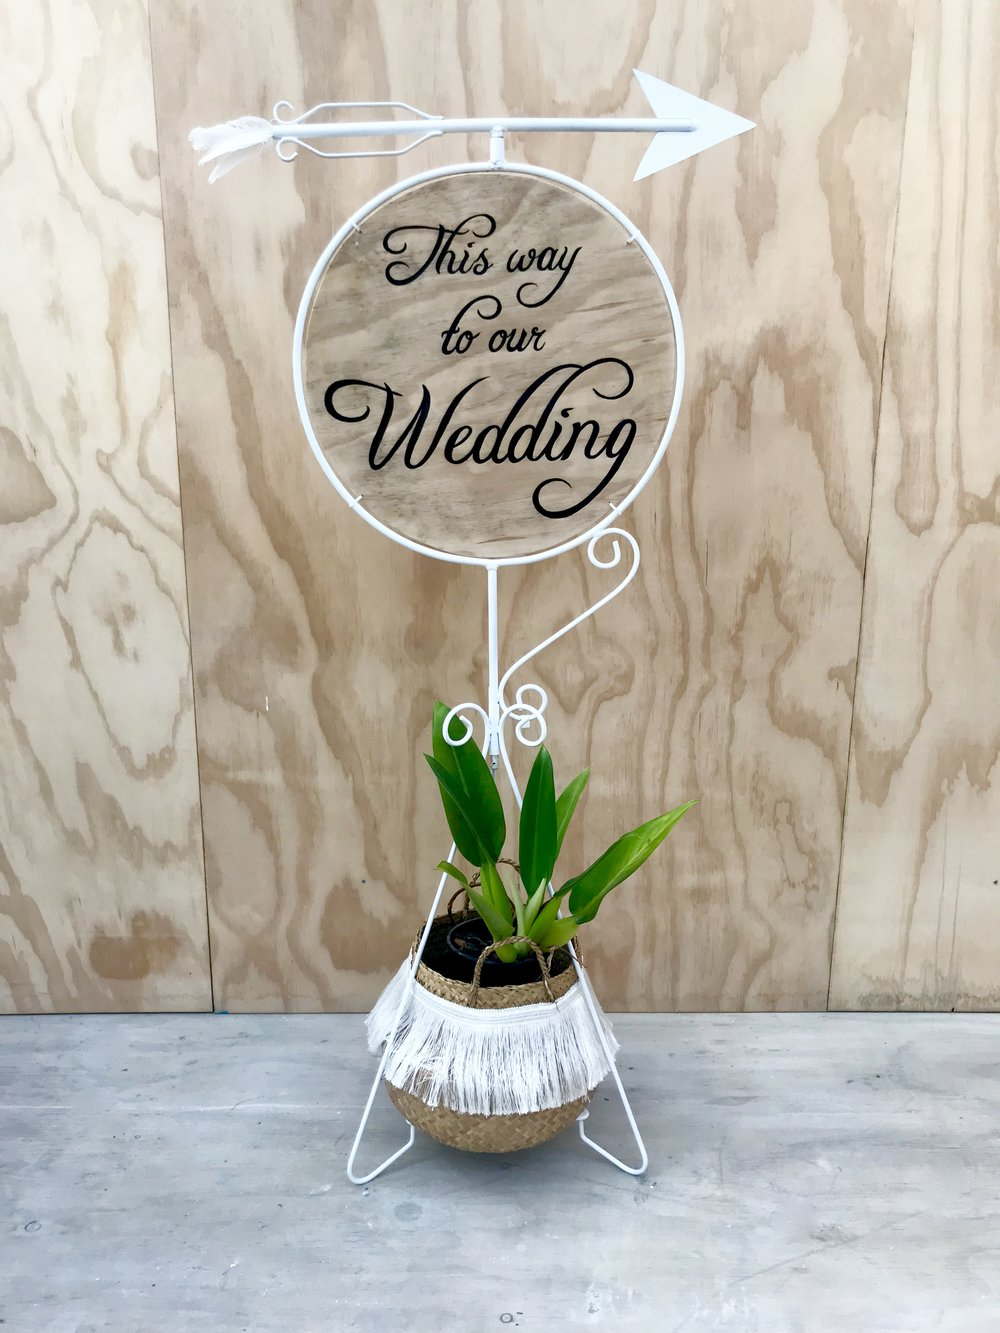 Wedding sign with Arrow